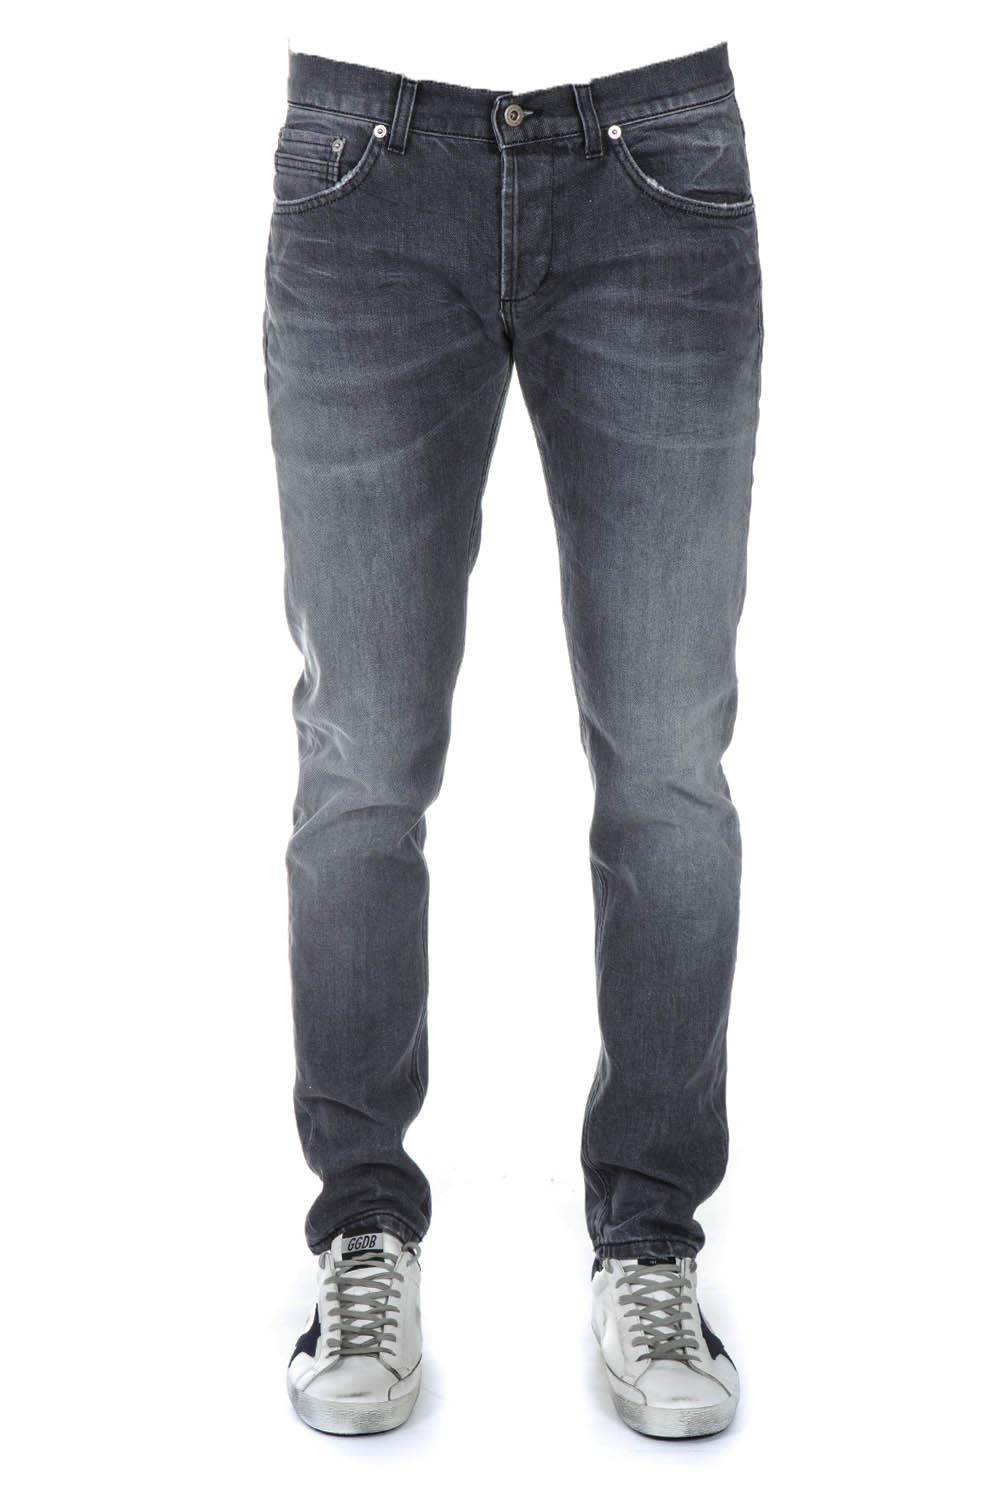 Dondup Black Denim Cotton Jeans